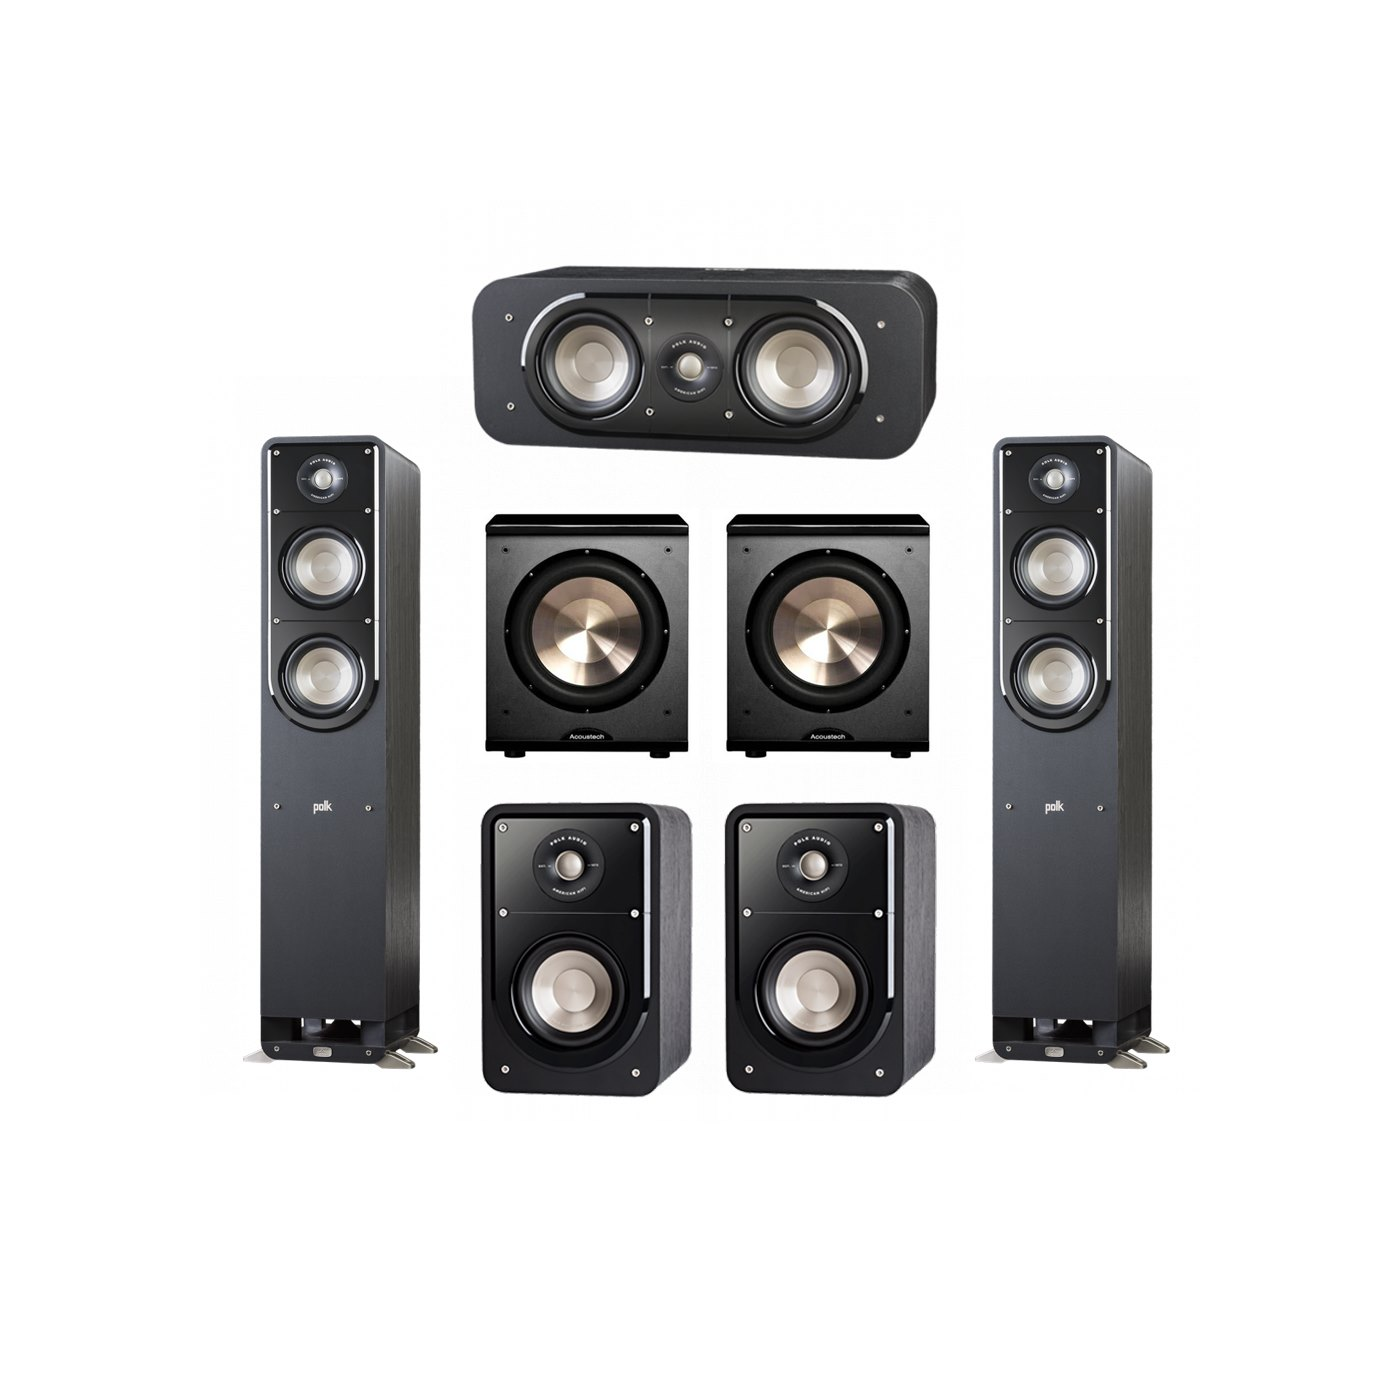 Polk Audio Signature 5.2 System with 2 S50 Tower Speaker, 1 Polk S30 Center Speaker, 2 Polk S15 Bookshelf Speaker, 2 BIC/Acoustech Platinum Series PL-200 Subwoofer